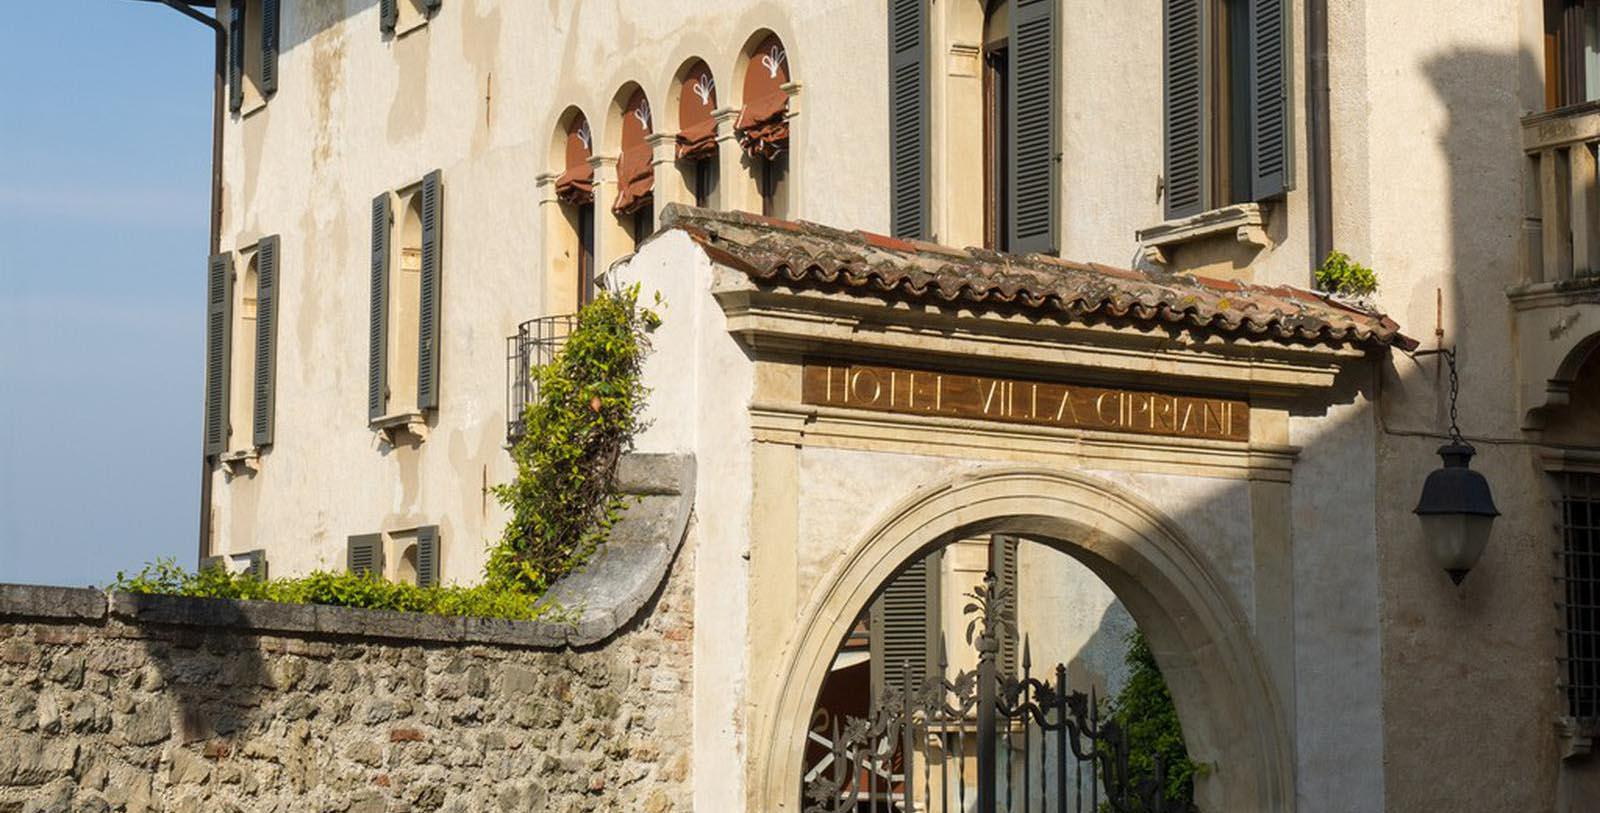 Image of Entrance Villa Cipriani, 1889, Member of Historic Hotels Worldwide, in Asolo, Italy, Discover